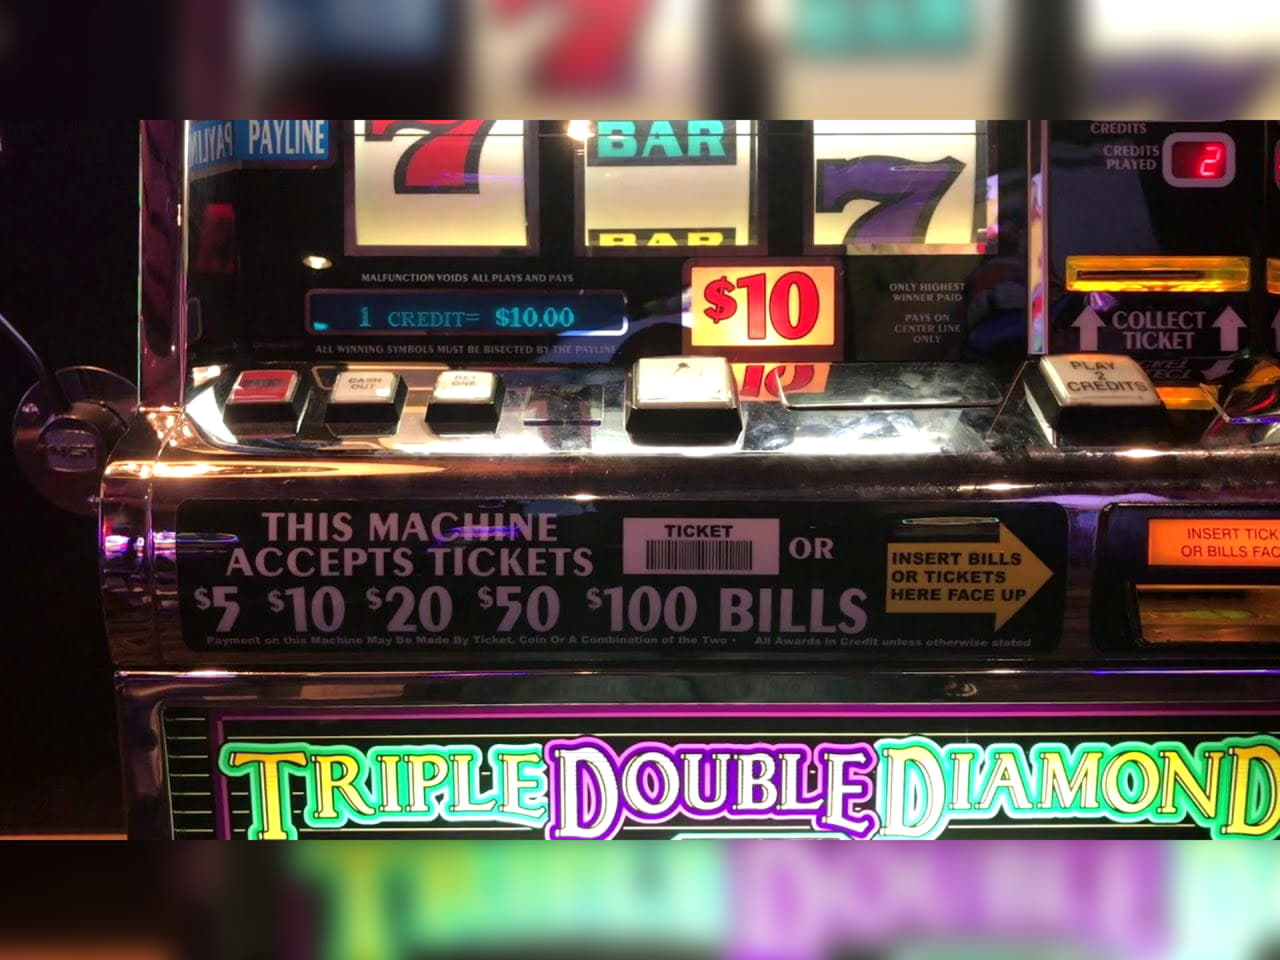 88 free casino spins at Two-Up Casino